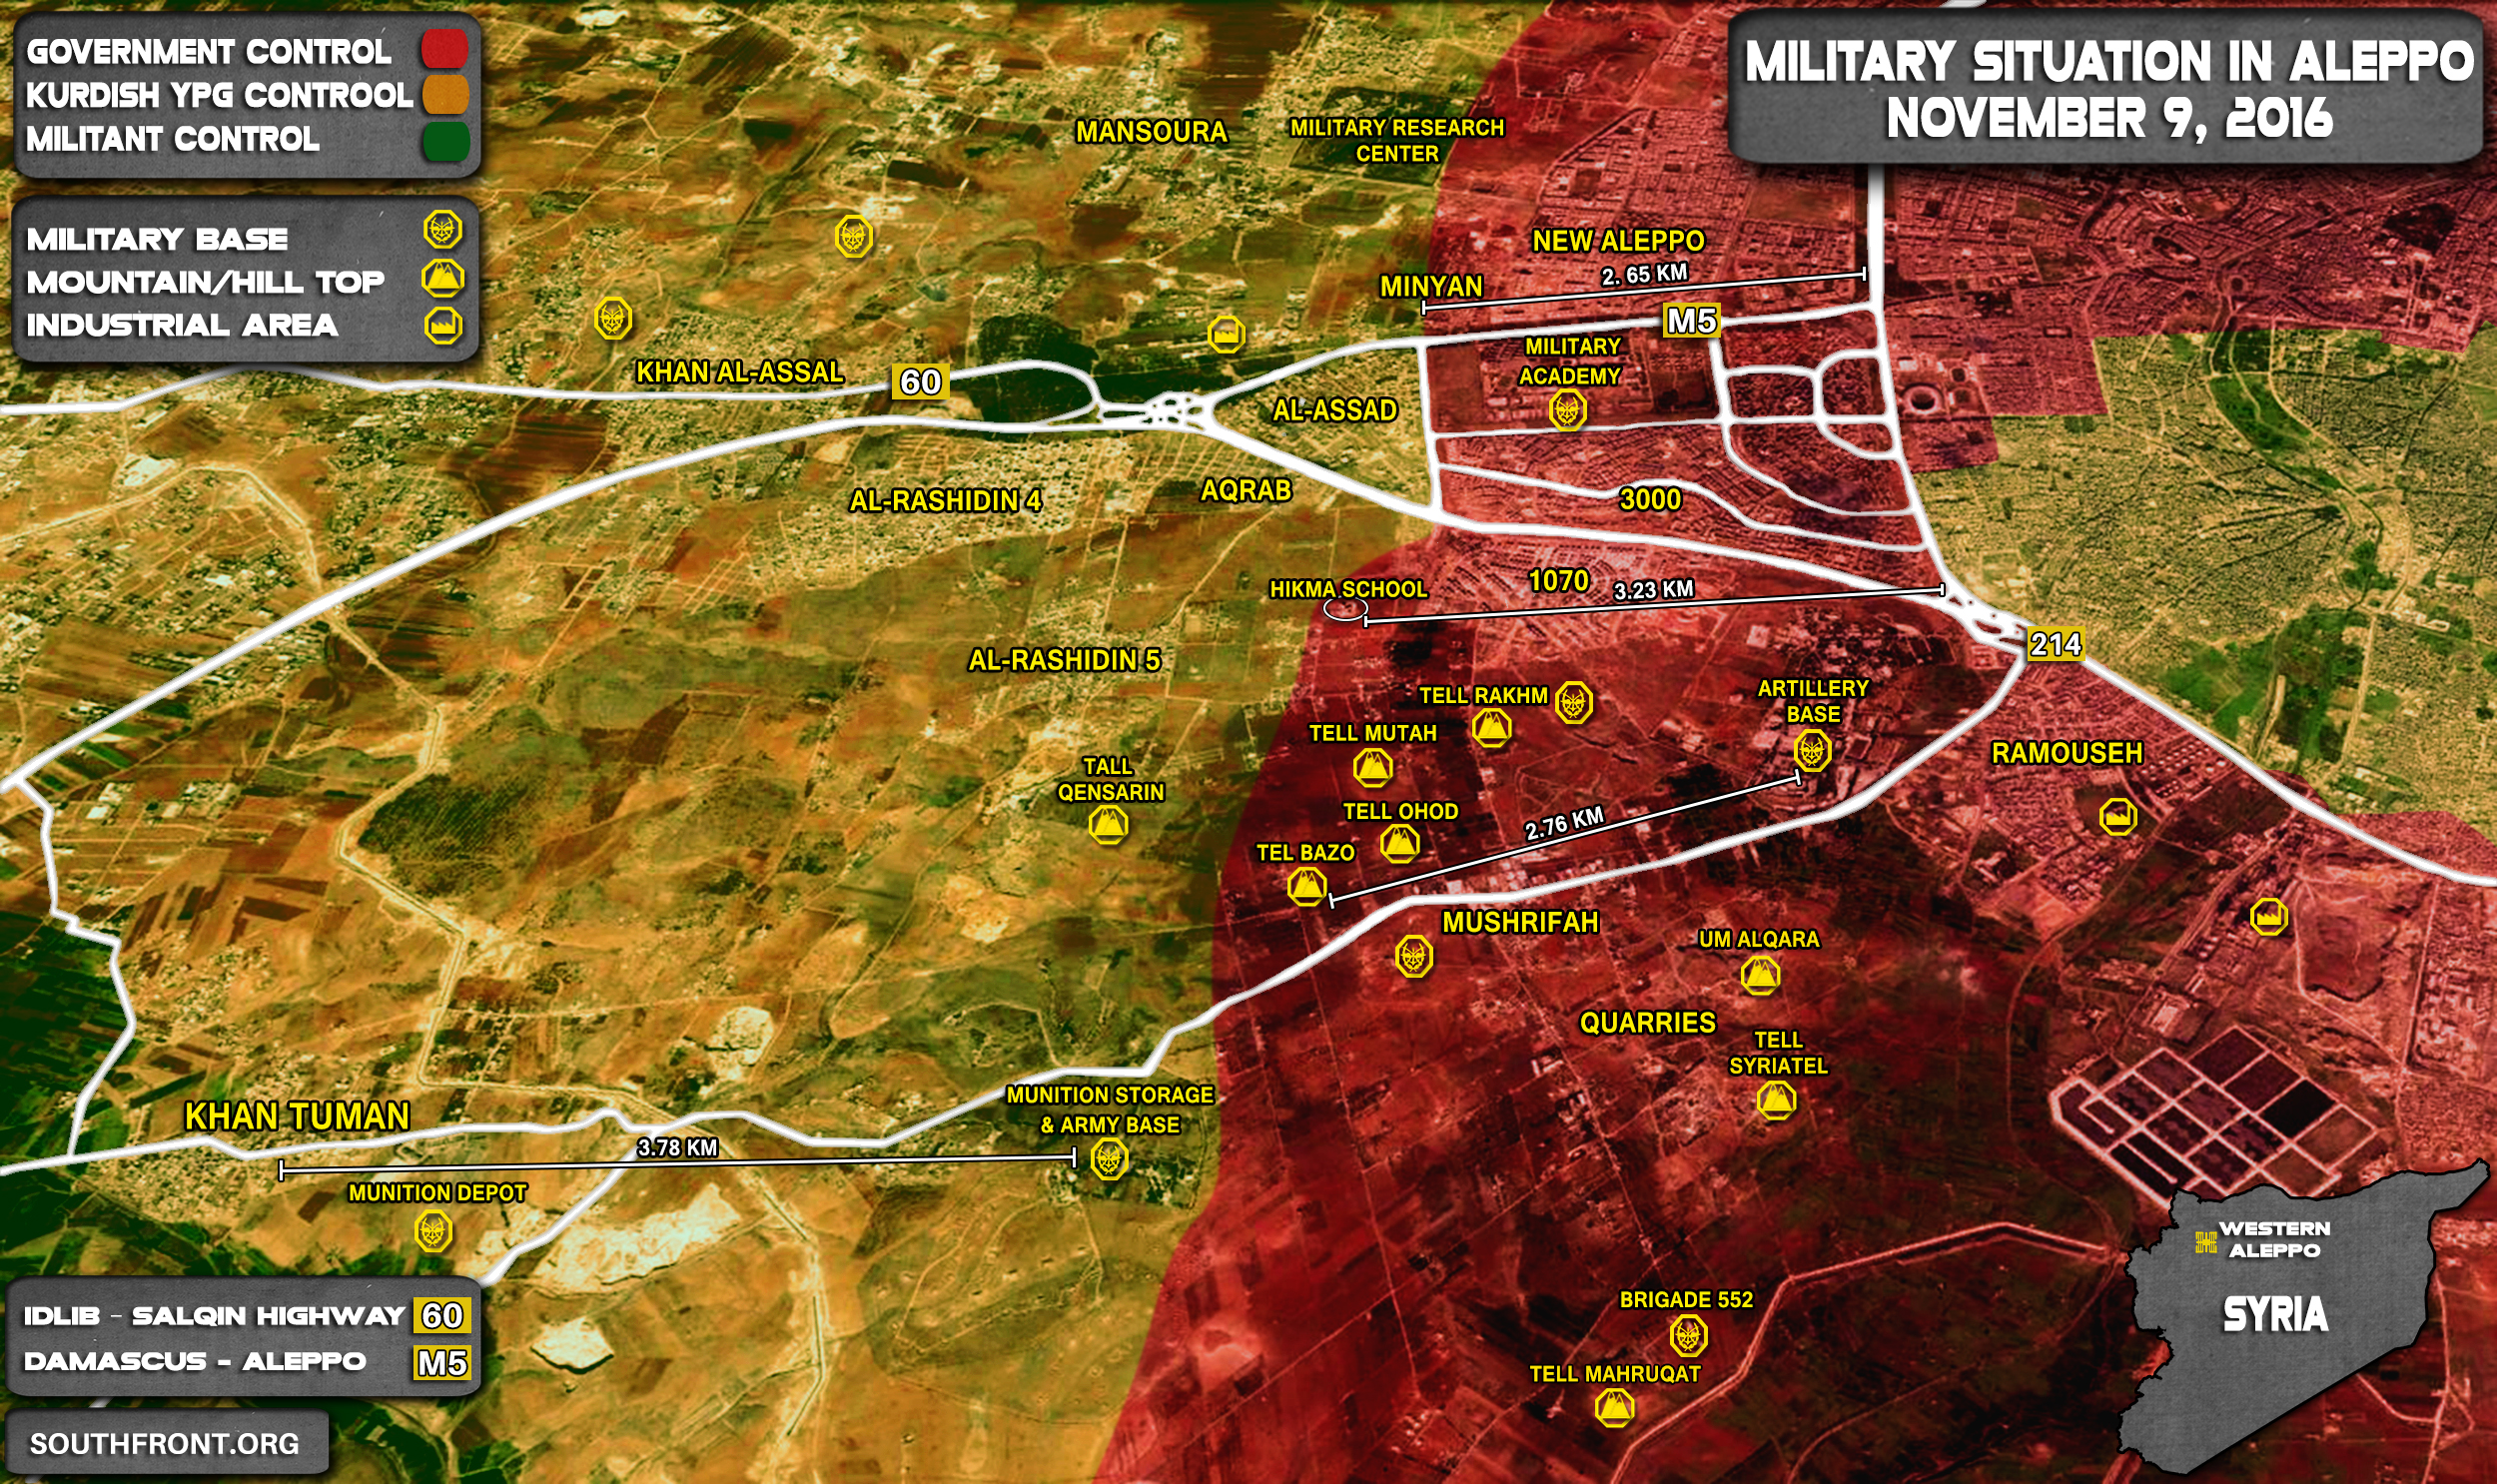 Overview of Military Situation in Aleppo City on November 9, 2016